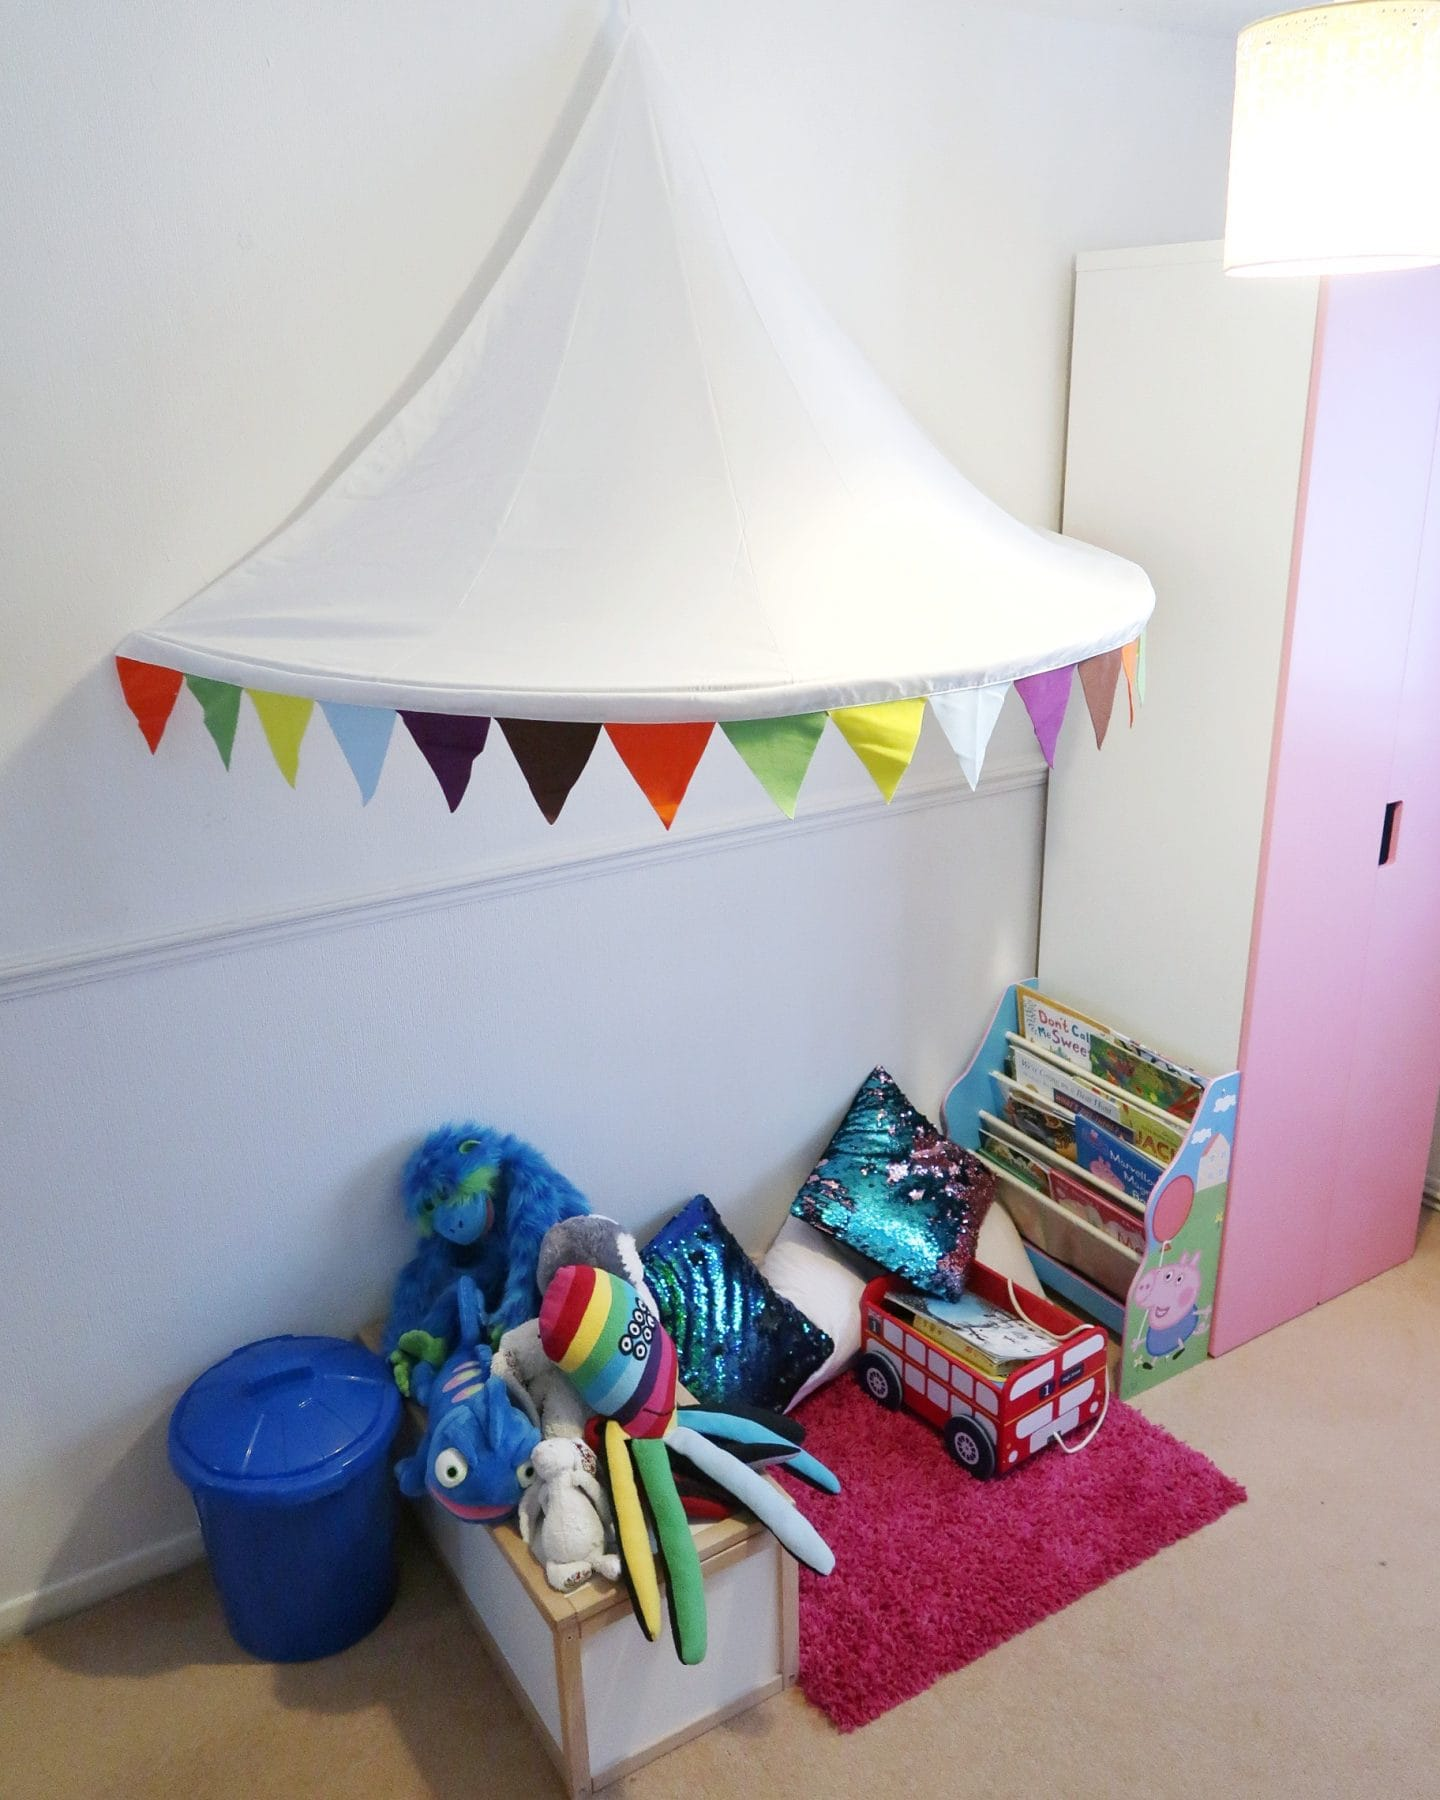 Reading nook - Bath, book, bed with Booktrust